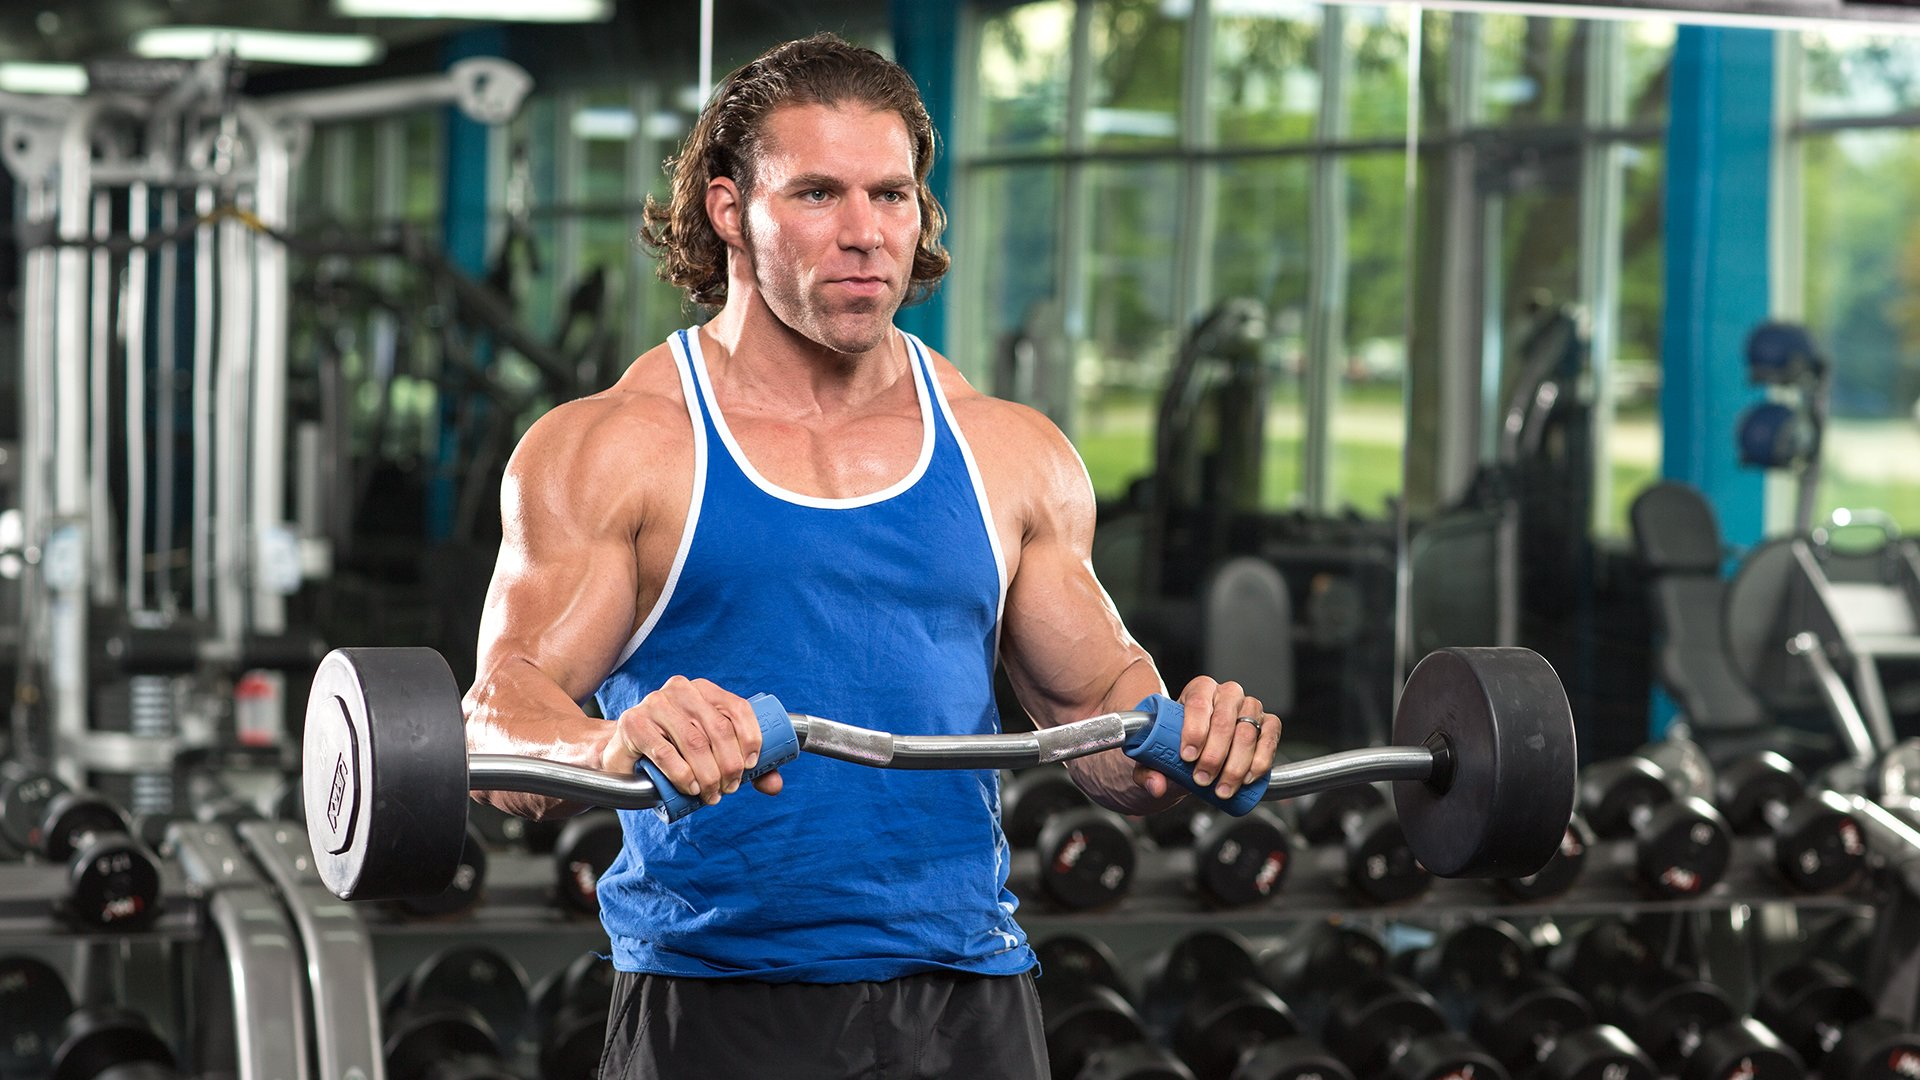 4 Advanced Moves For Extreme Arm Growth